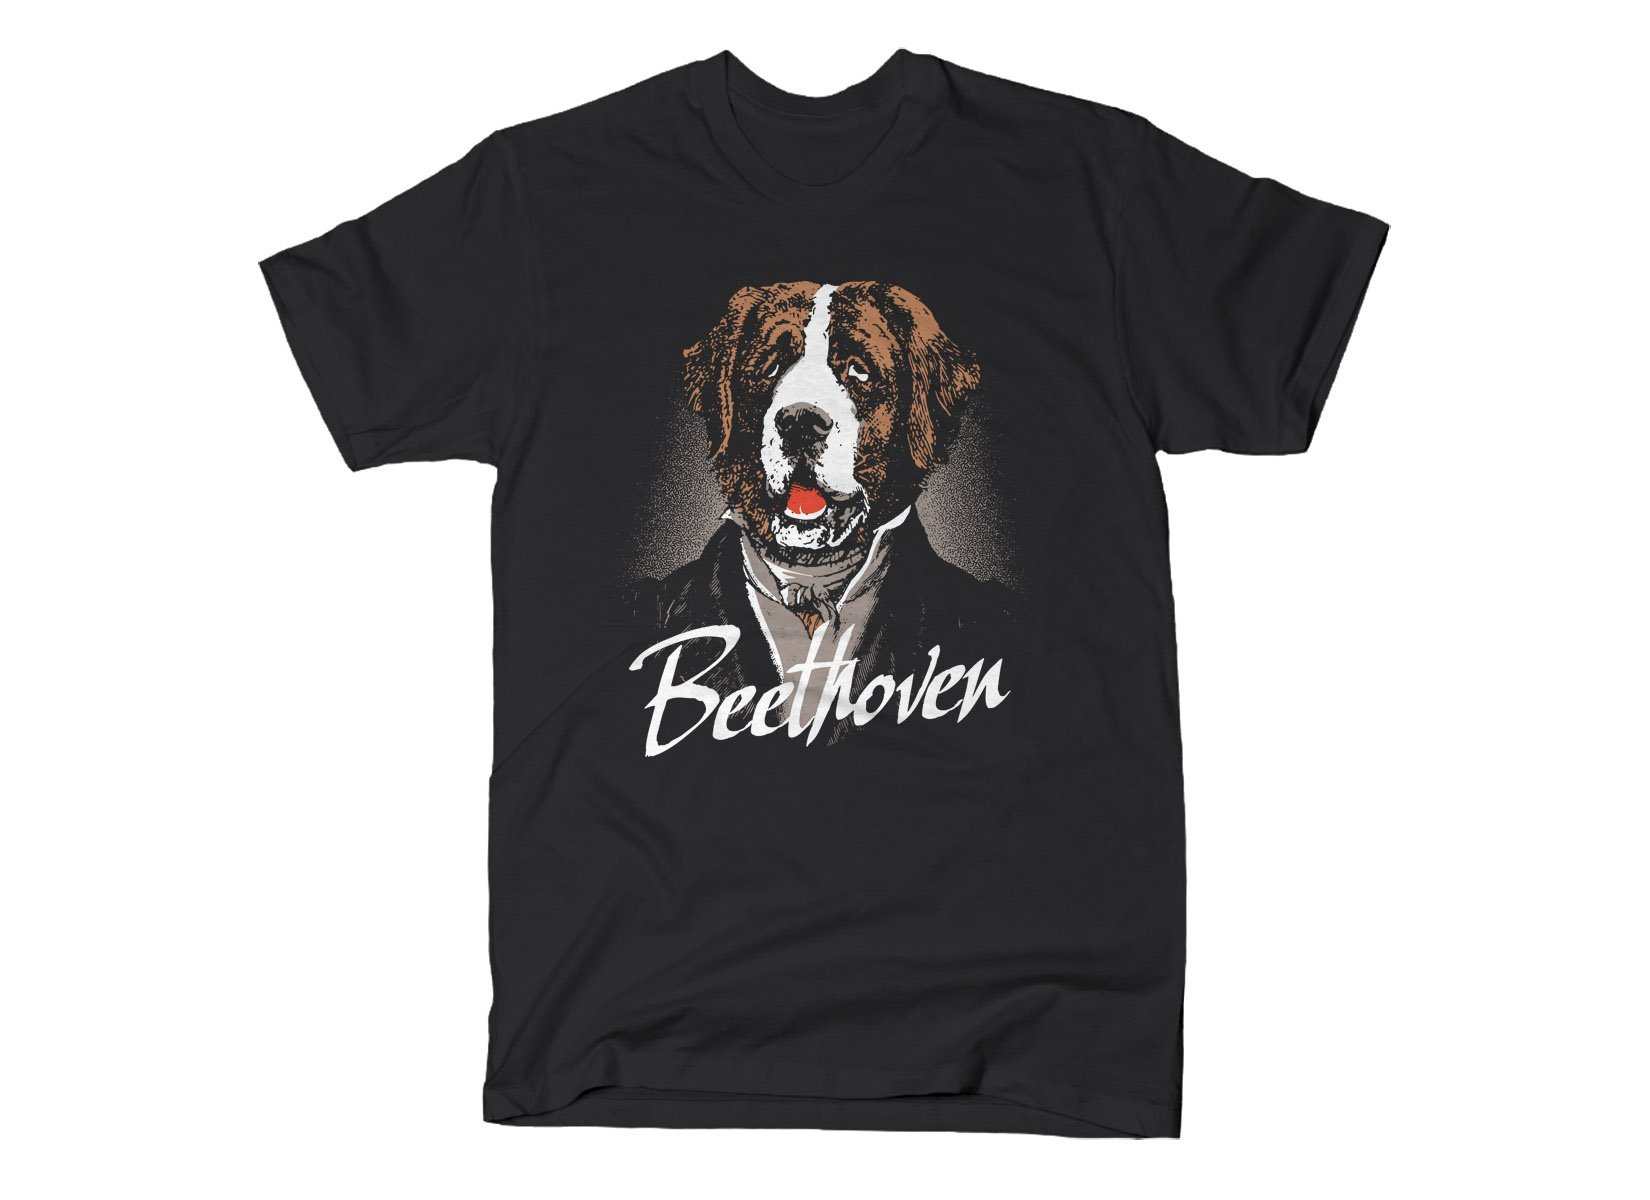 Beethoven on Mens T-Shirt